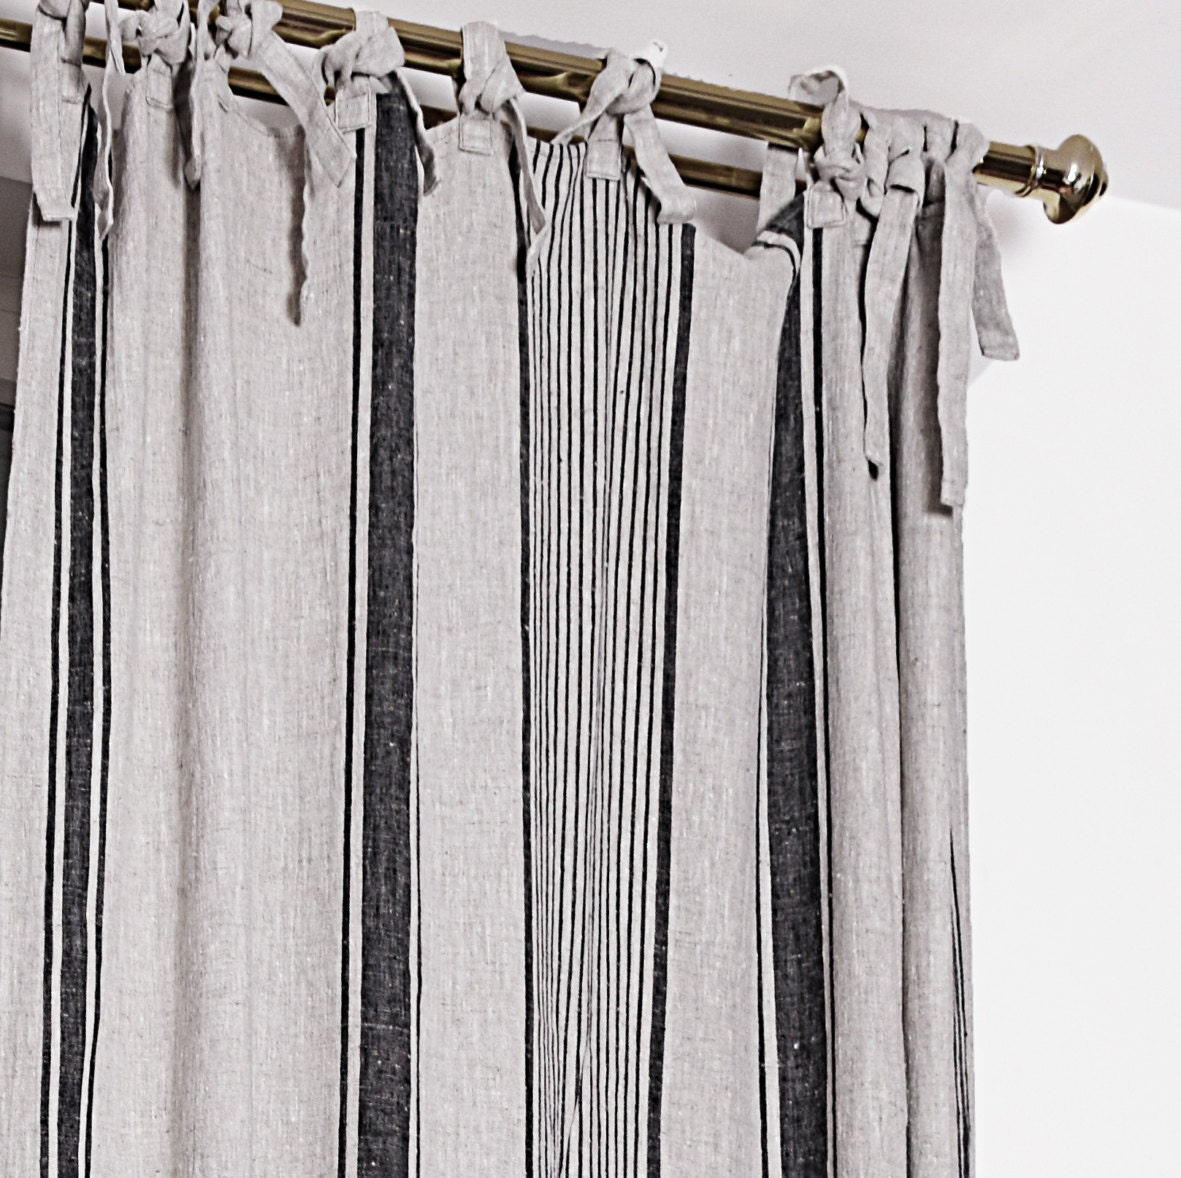 Cotton & Linen Curtains If you're looking for a fabric that lets in more light and can be easily-maintained, linen curtains are your answer. Perfect for virtually any room in the house, linen can be lined for light control, or unlined for a bright and breezy home.